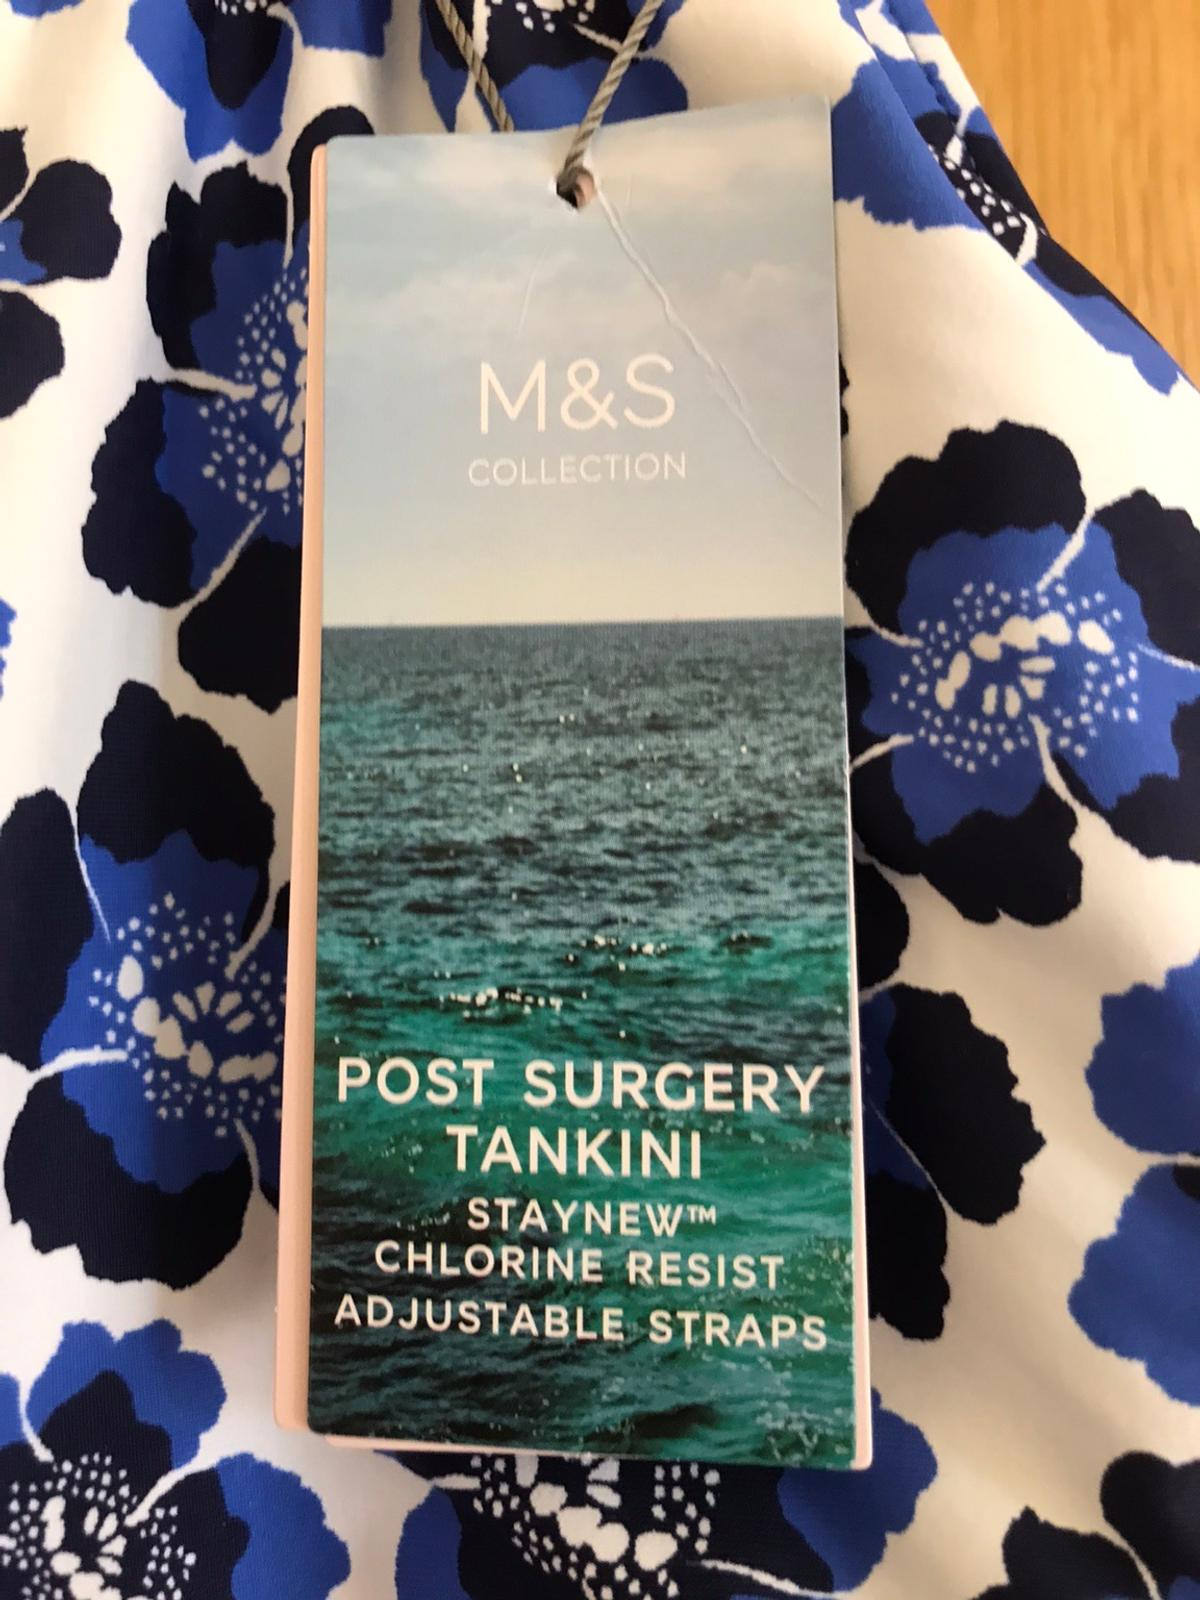 New With Tags M&s Post Surgery Floral Print Tankini Size 14 . Condition is New with tags. Dispatched with Royal Mail 2nd Class.signed for  Product Style: Tankinis Regular fit Lined Padded Sleeve length: Strap Non wired Added stretch Chlorine resistant